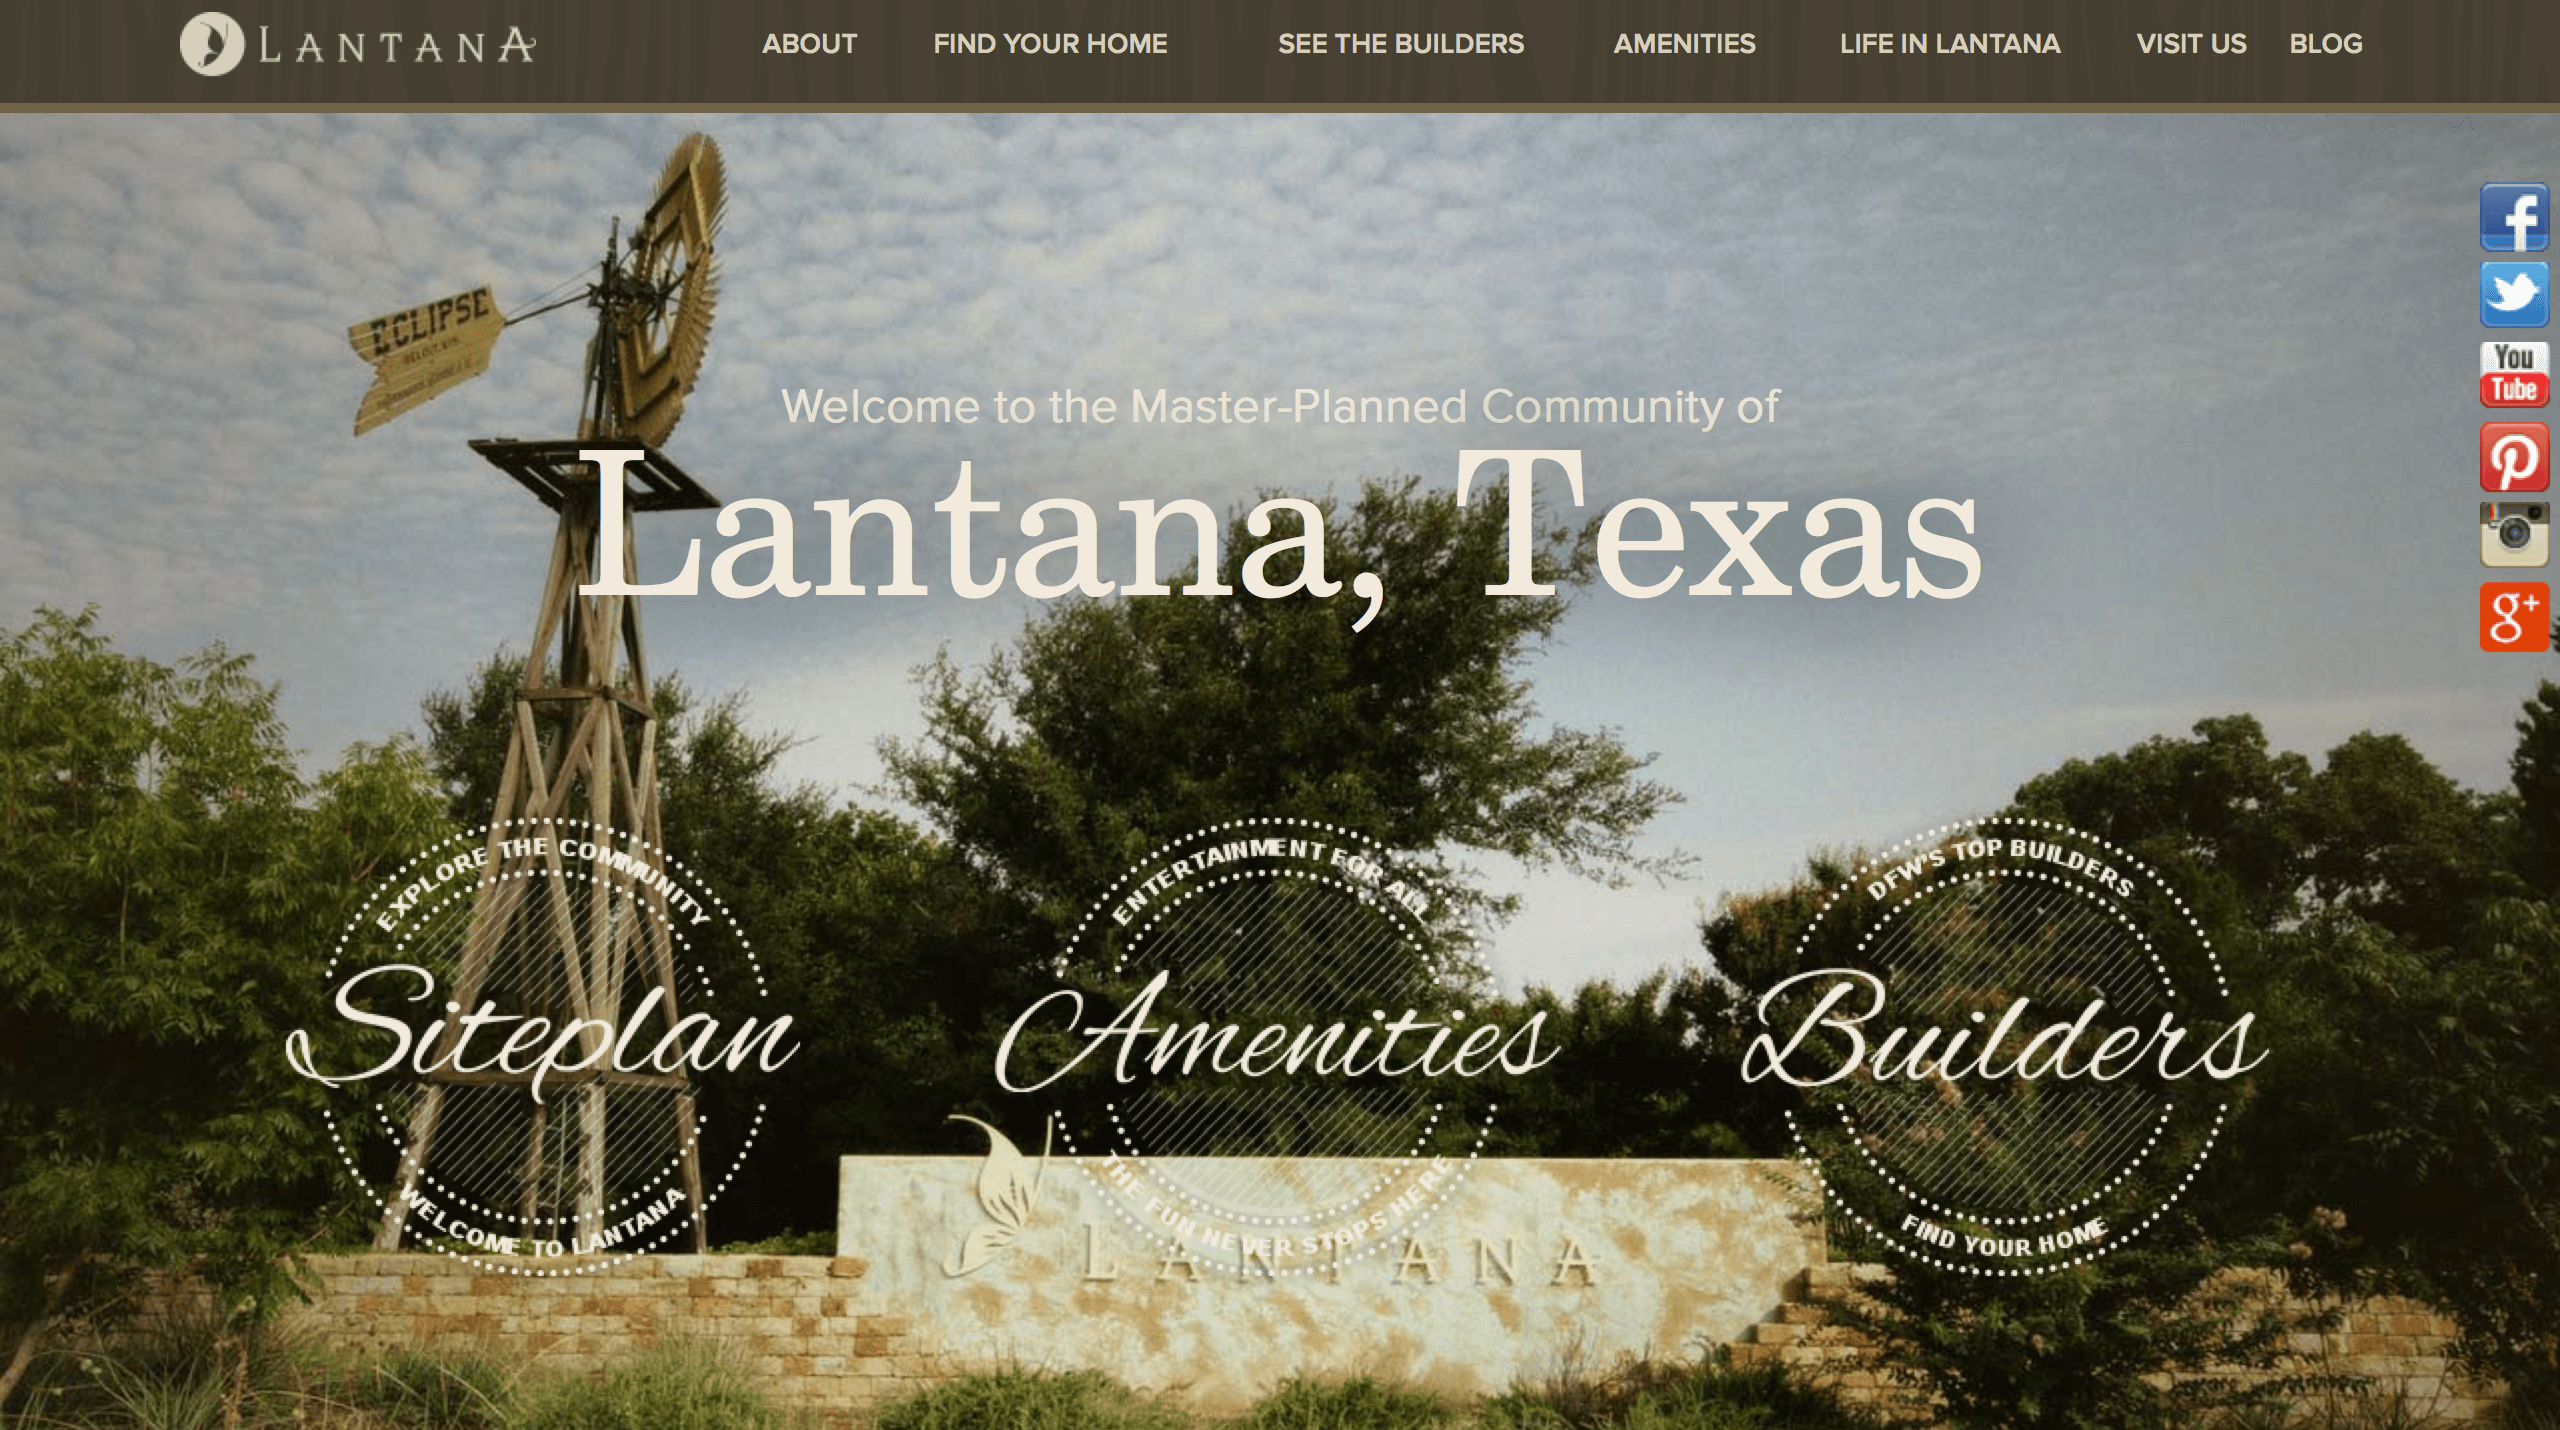 designs hashtag 17 what the business is about lantana is a creator of niche homes with beautiful landscaping inspired by the hill country architecture